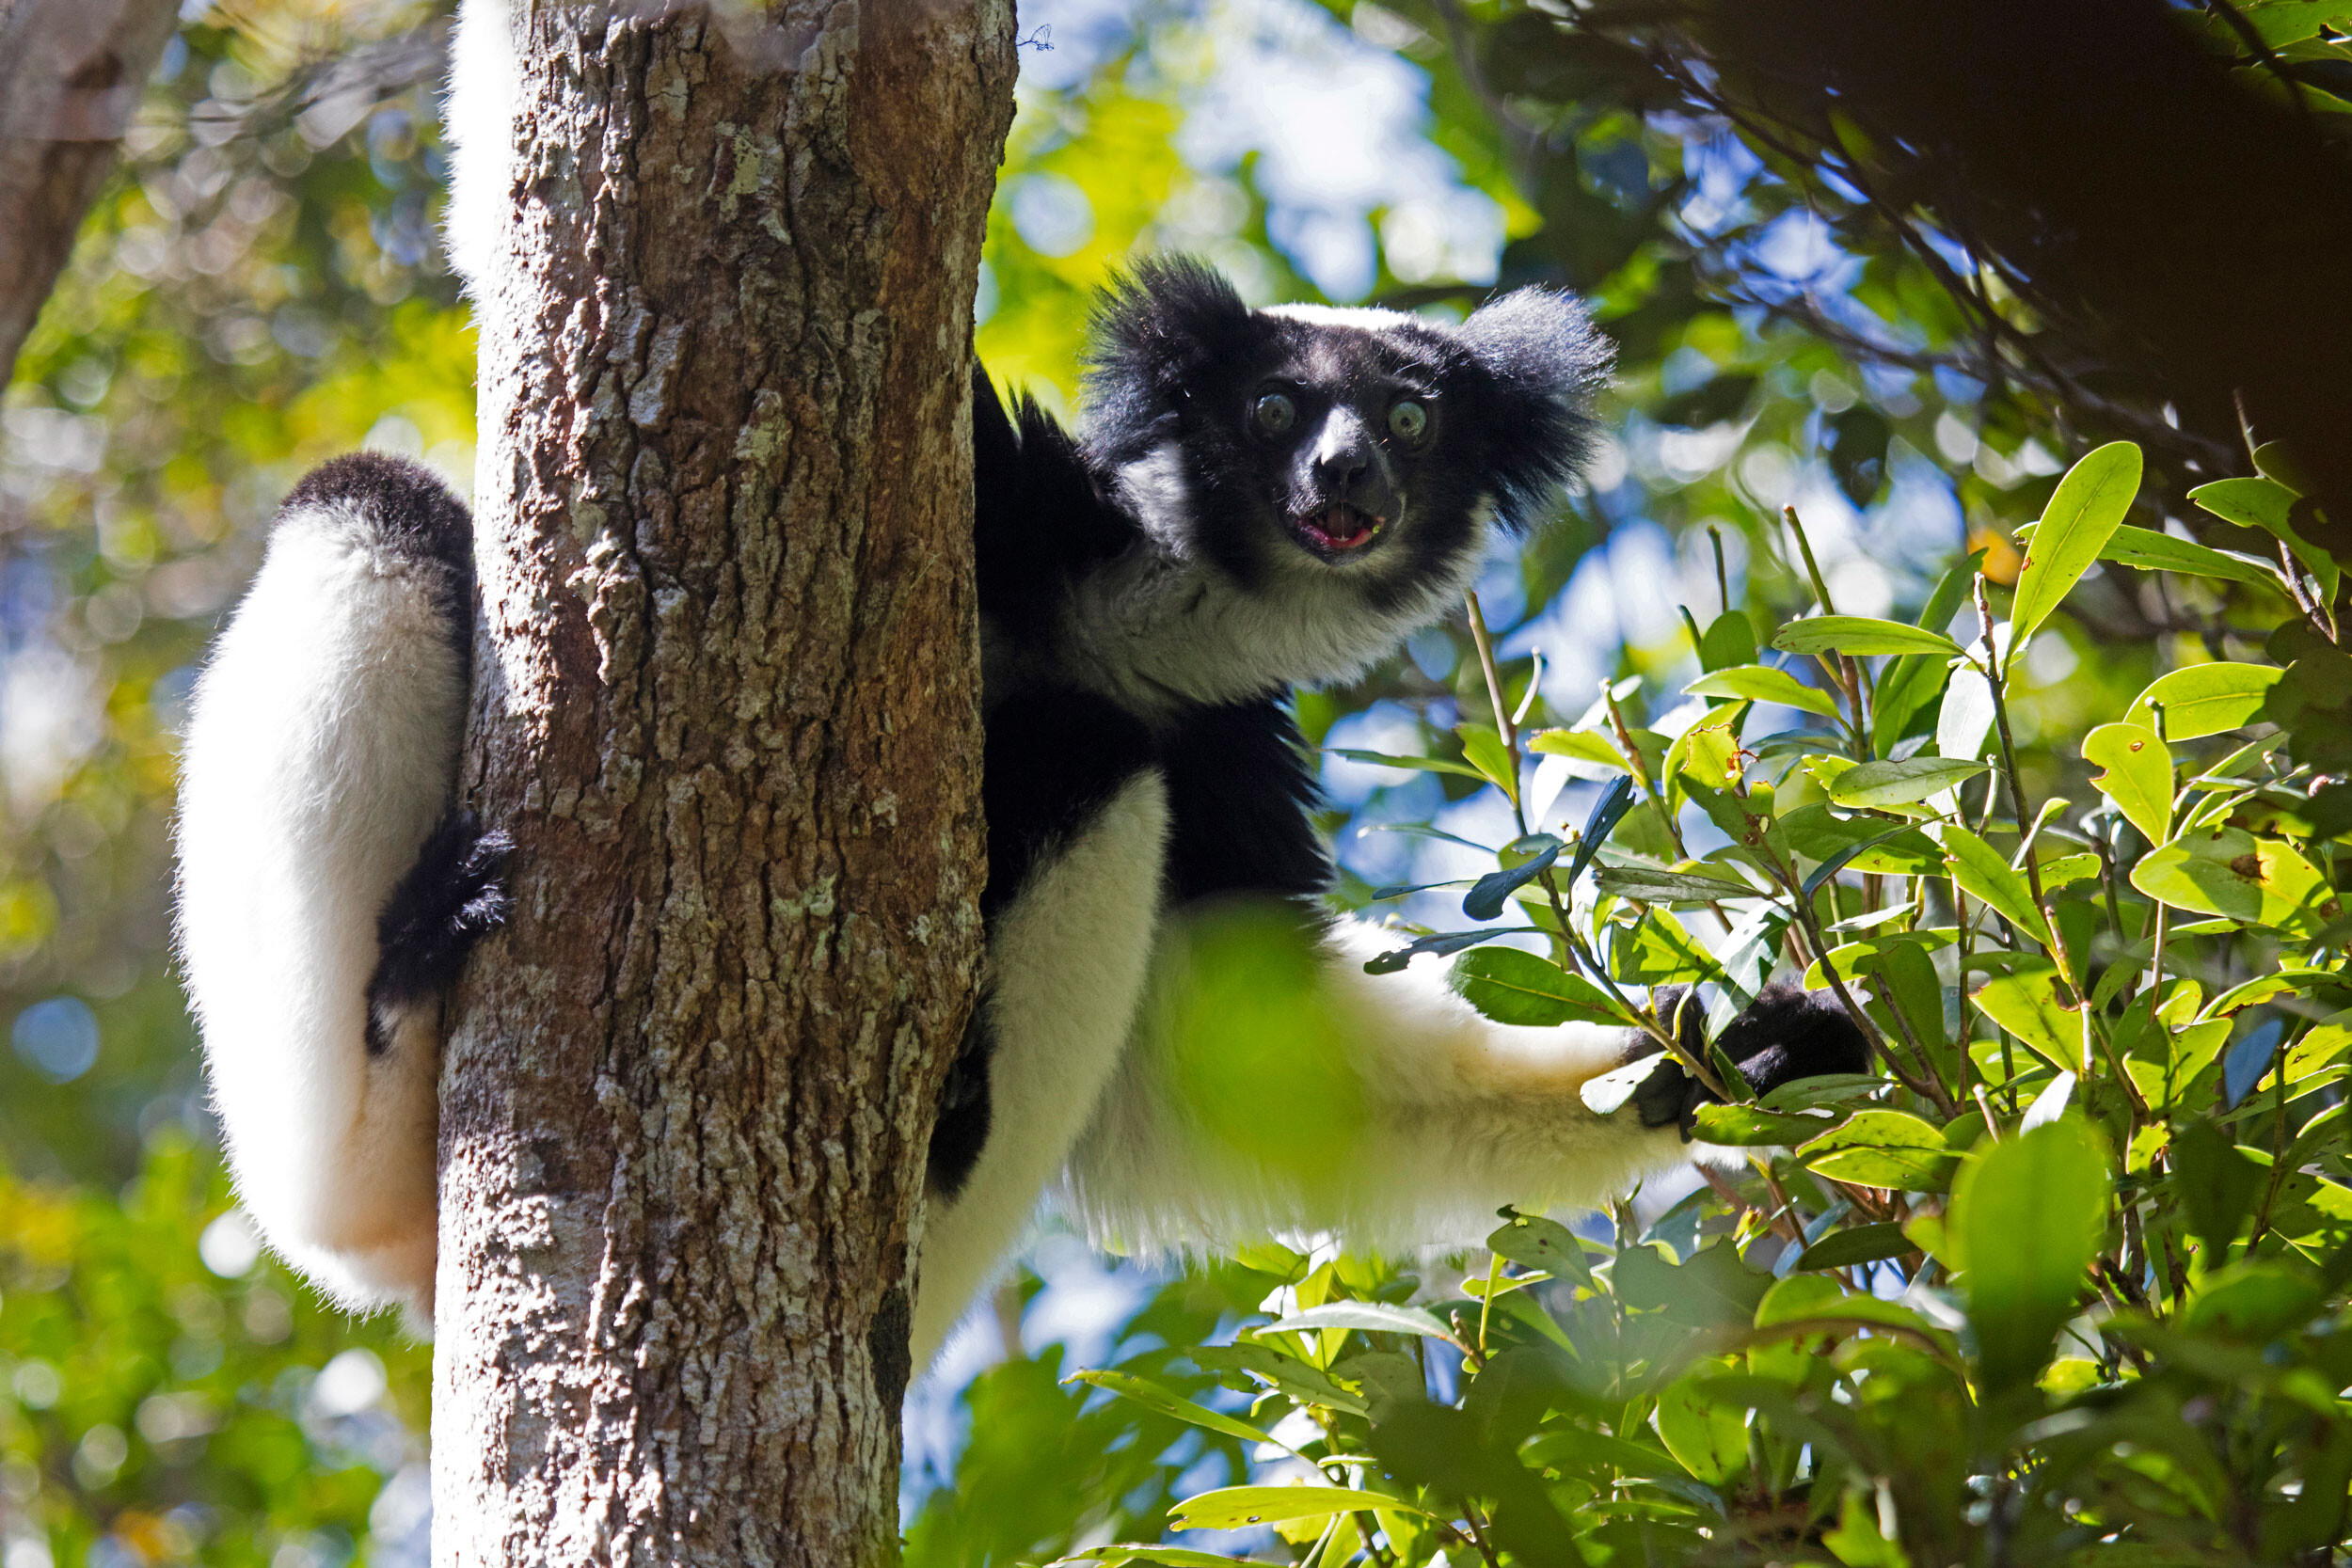 These lemurs could win a Grammy for their rhythmic singing abilities